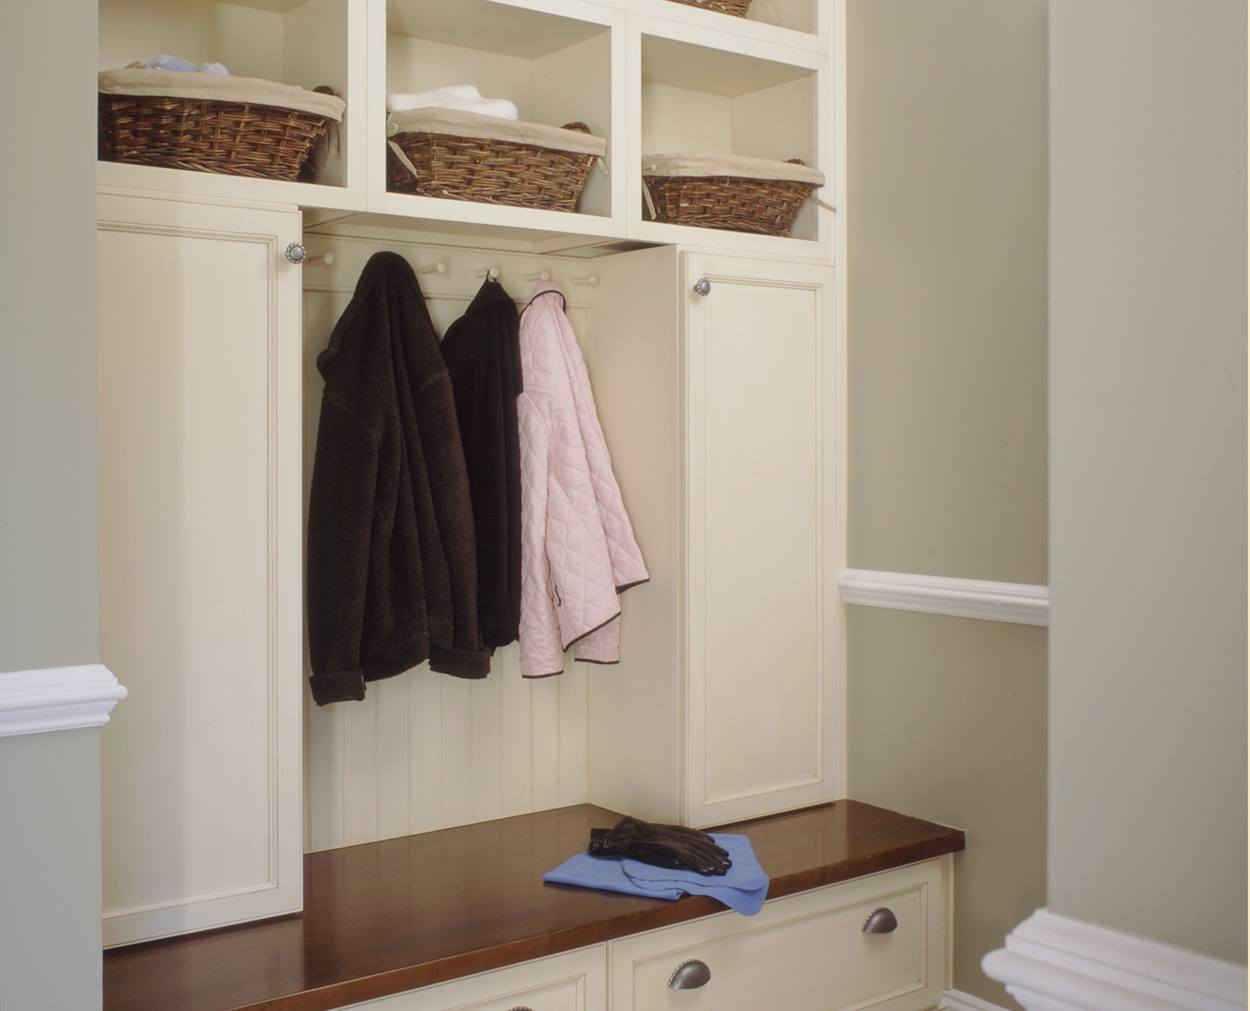 hooks and baskets and a solid wood top are the hightlight of this mudroom builtin.